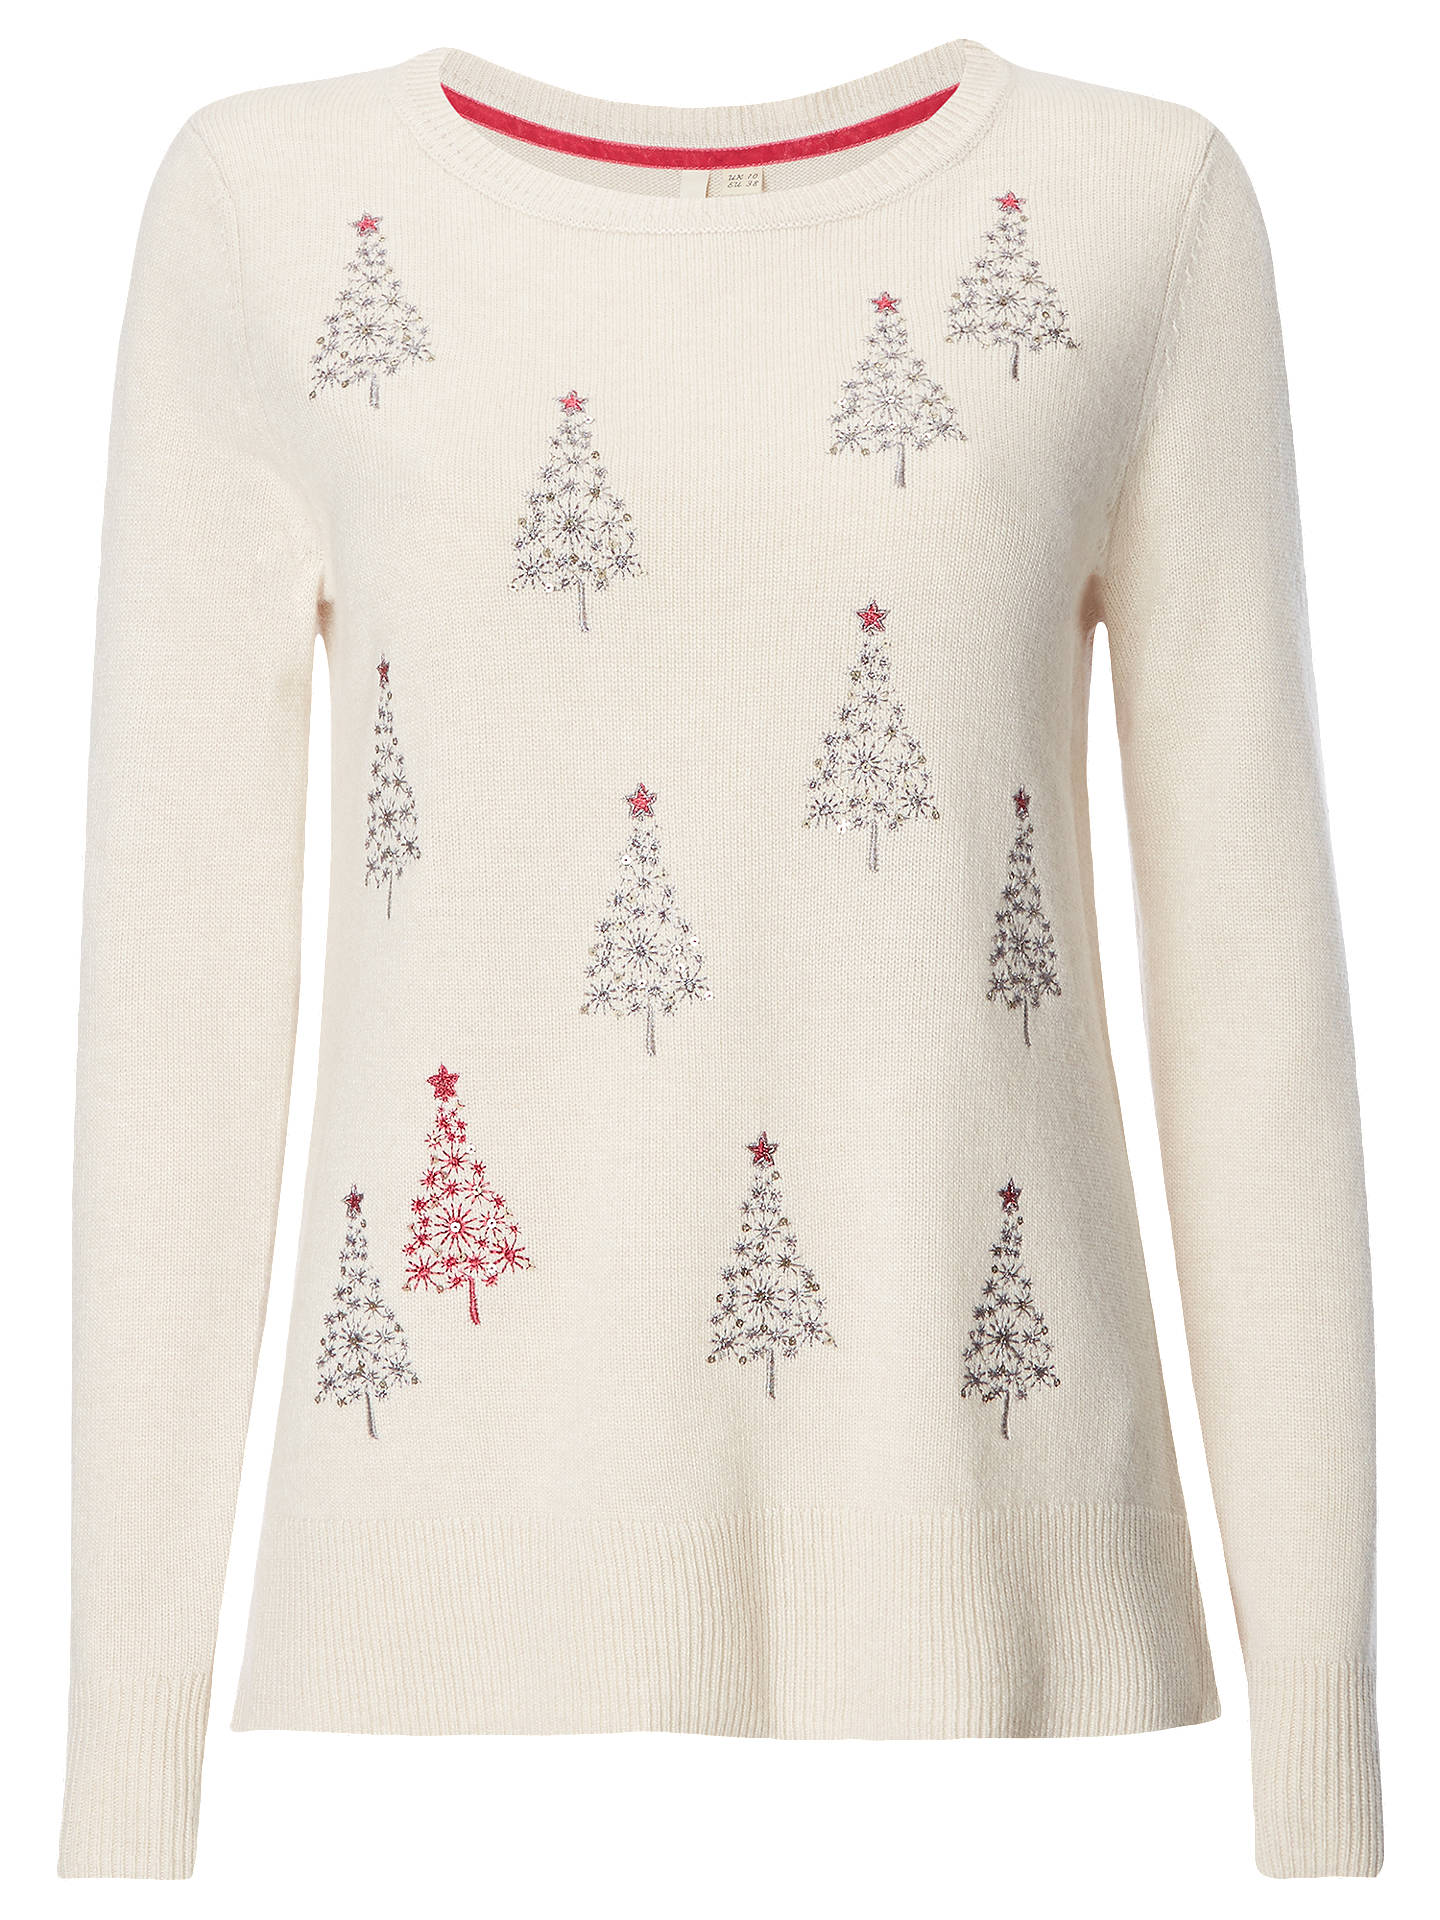 BuyWhite Stuff Xmas Tree Christmas Jumper, Oatmeal, 6 Online at johnlewis.com